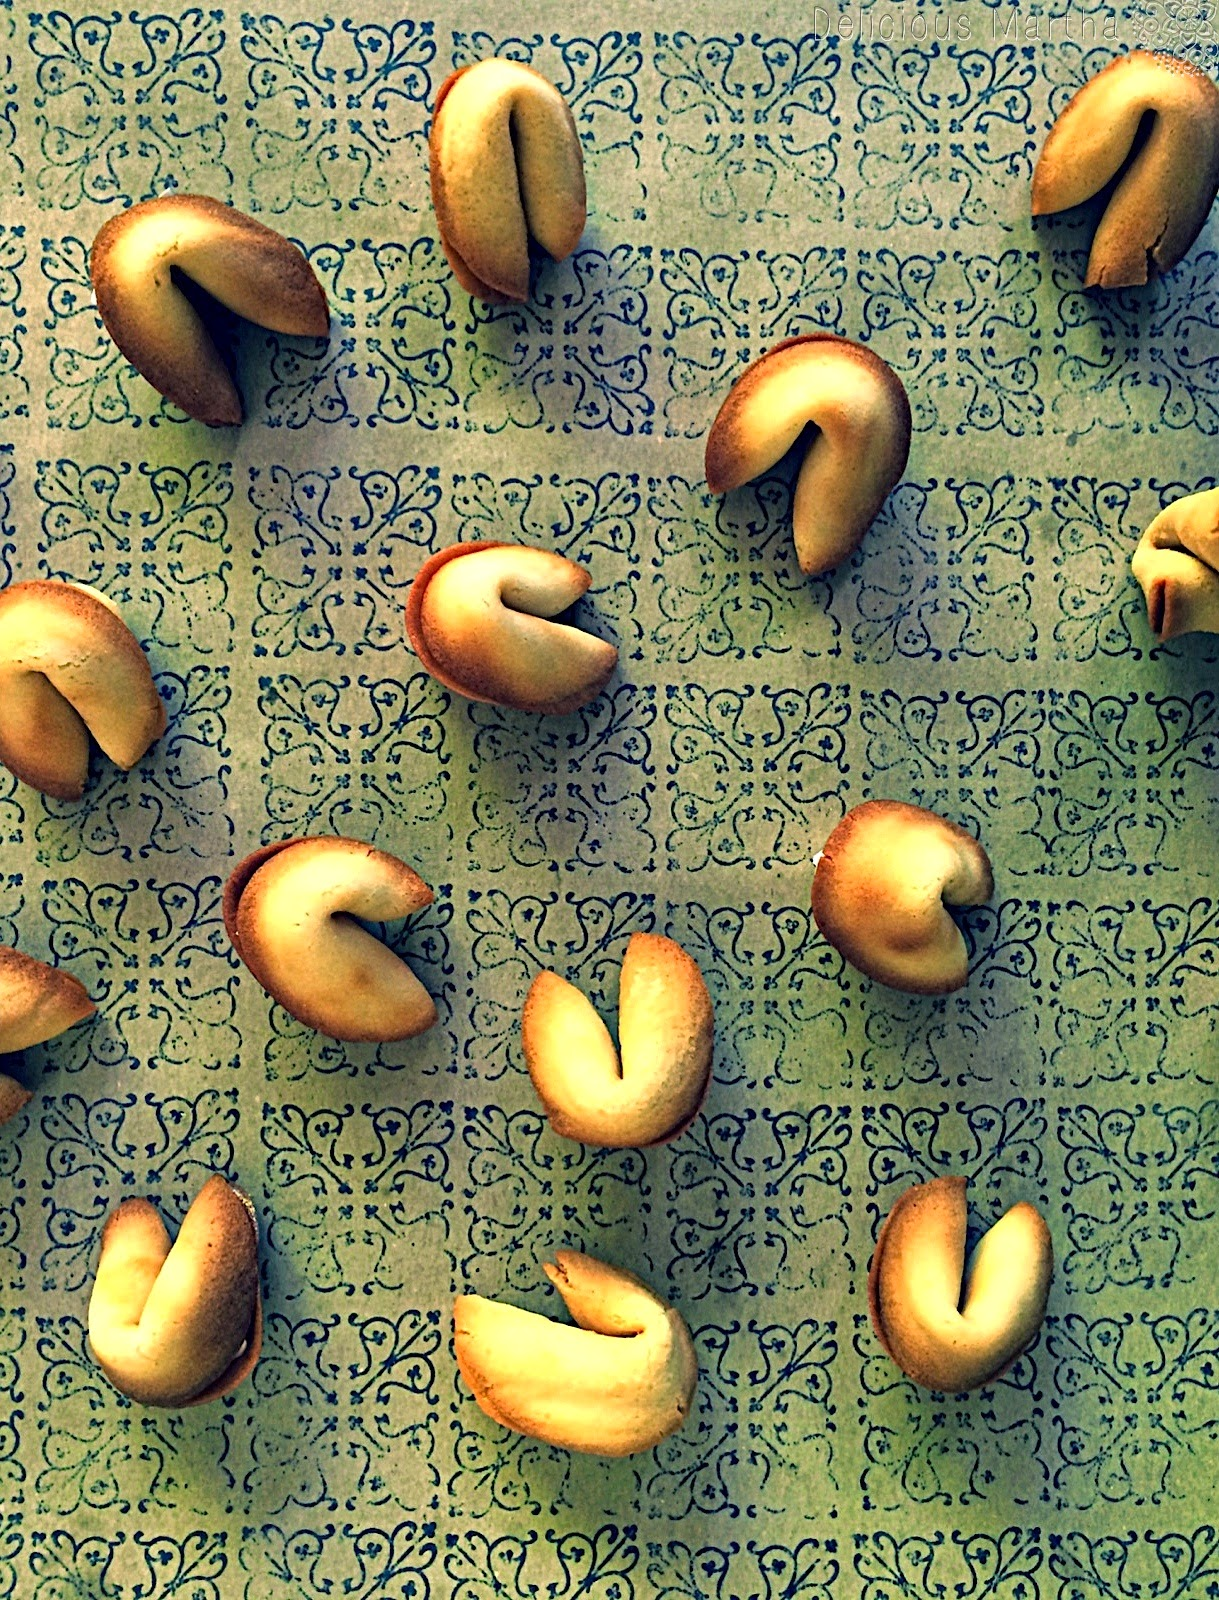 Galletas de la fortuna (Fortune cookies)